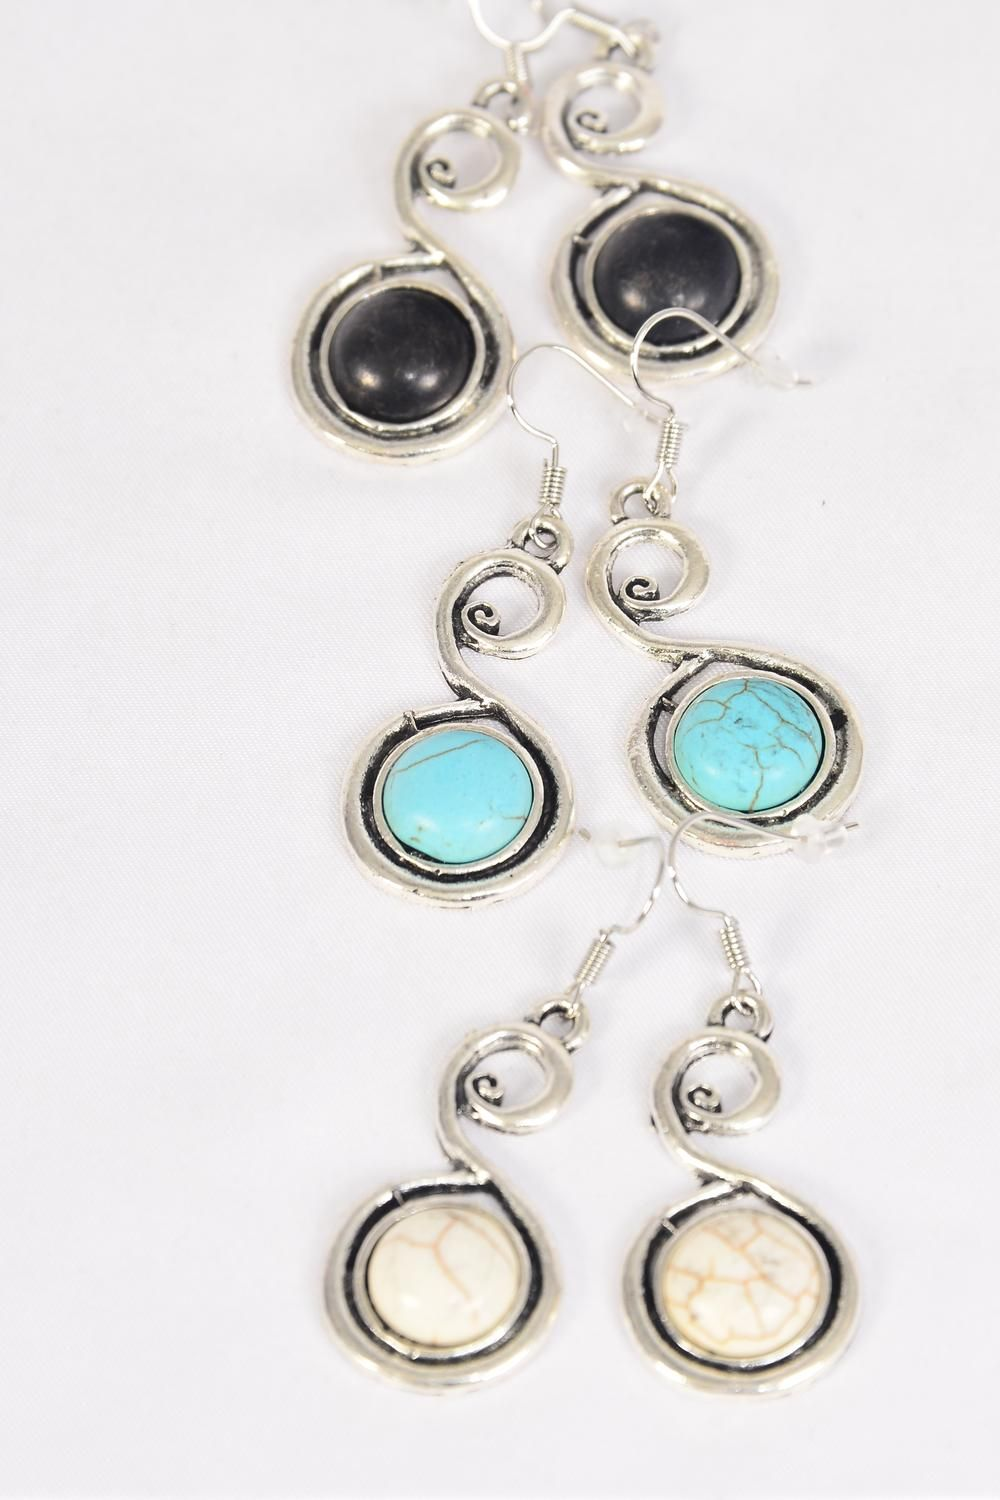 "Earrings Metal Antique Round Dangle Semiprecious Stone/DZ match 76015 **Fish Hook** Size-1.5""x 1"" Wide,4 Black,4 Ivory,4 Turquoise Asst,Earring Card & OPP Bag & UPC Code -"